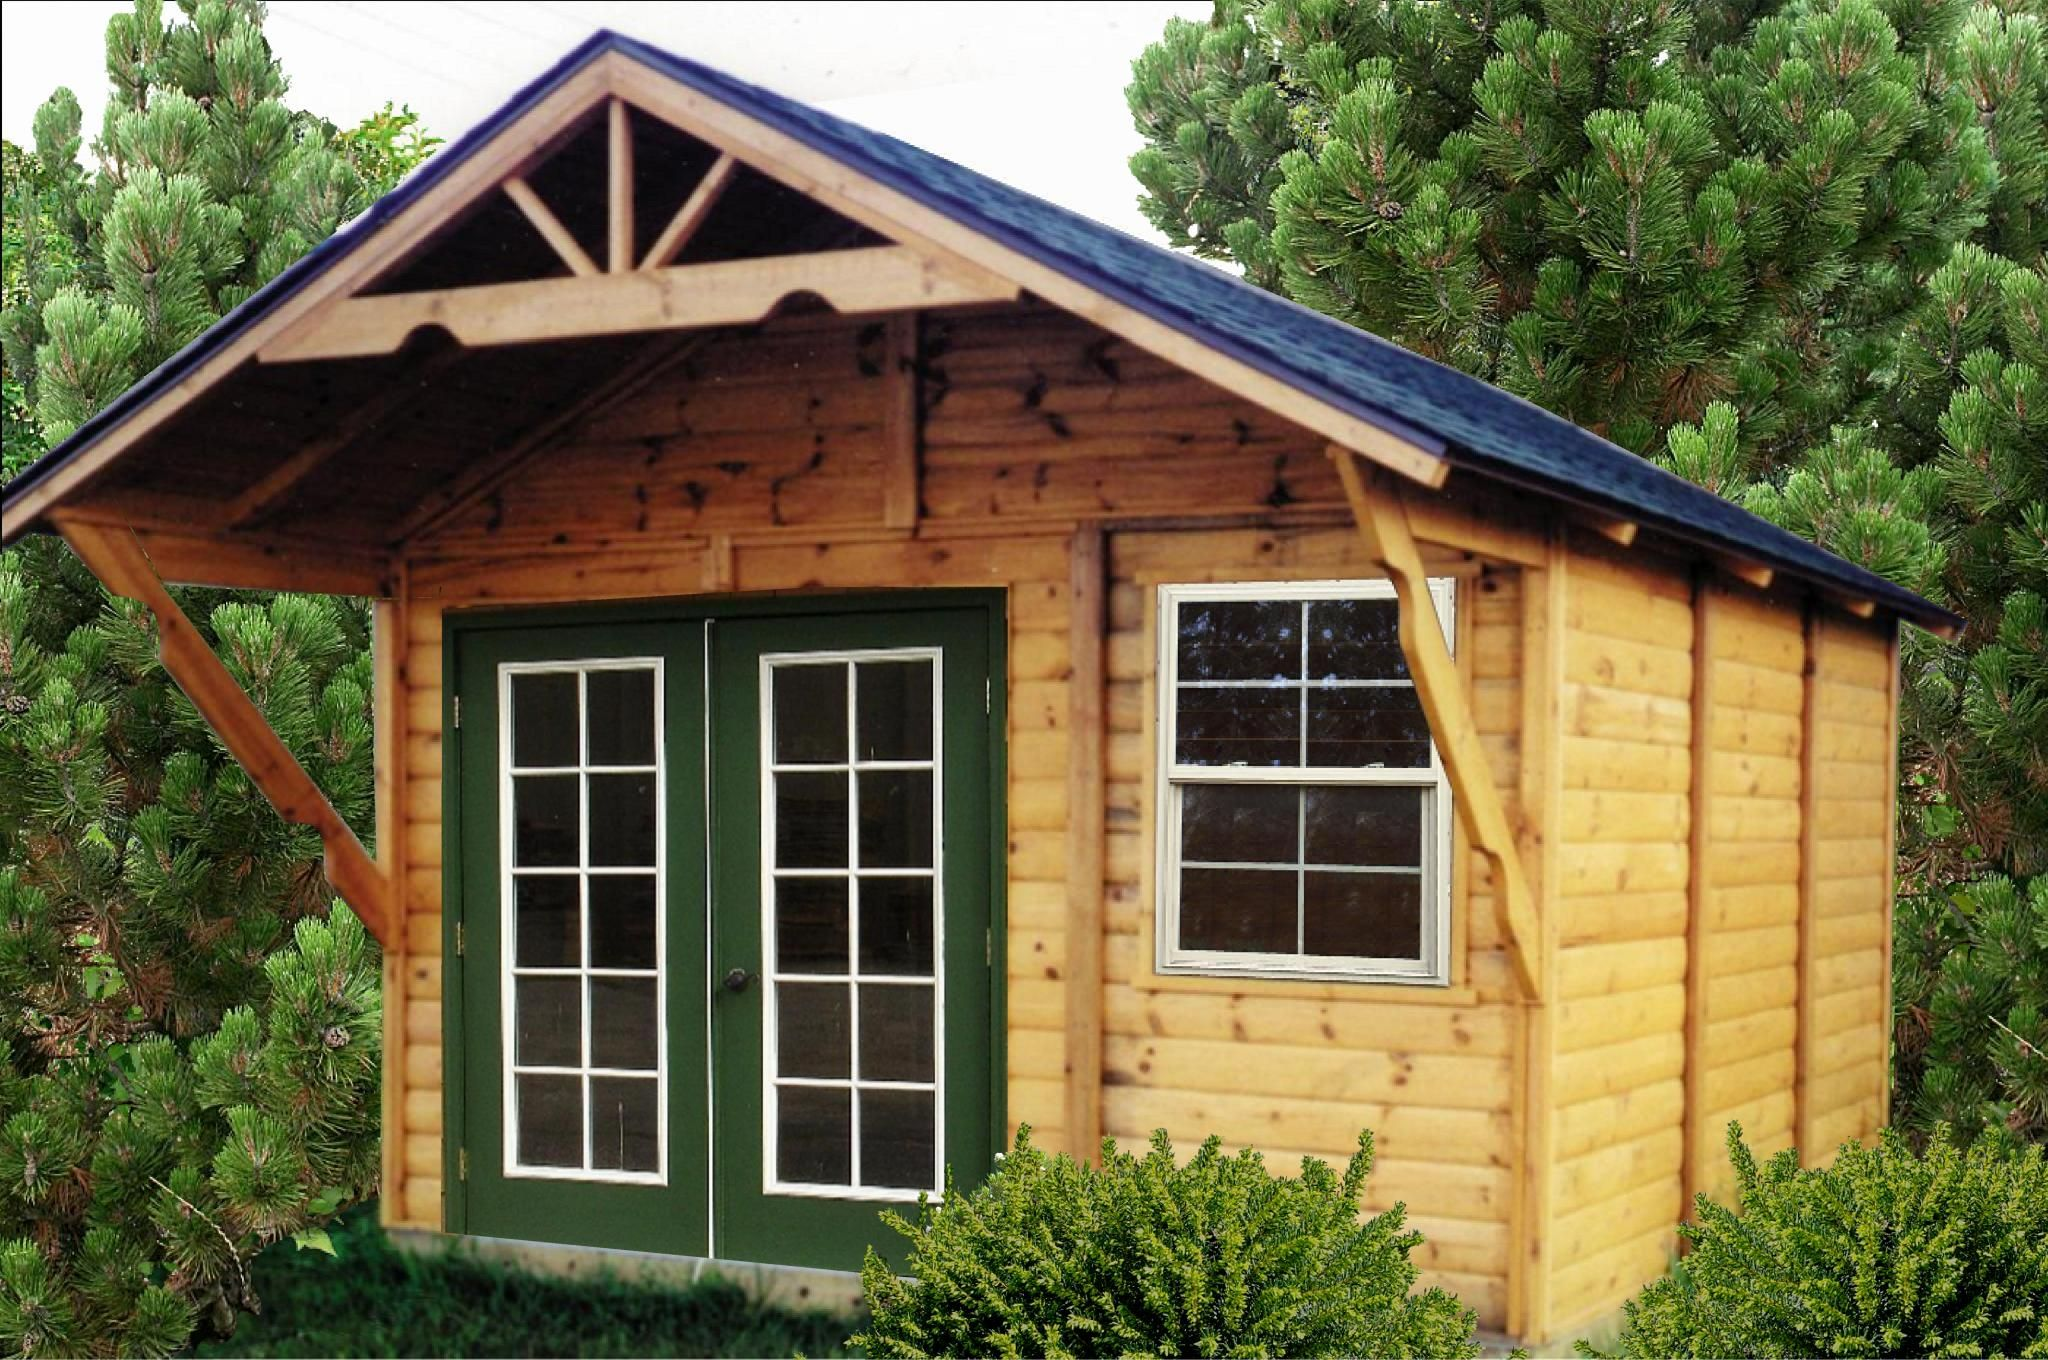 Garden shed ideas wooden storage shed plans home for Small wooden house design